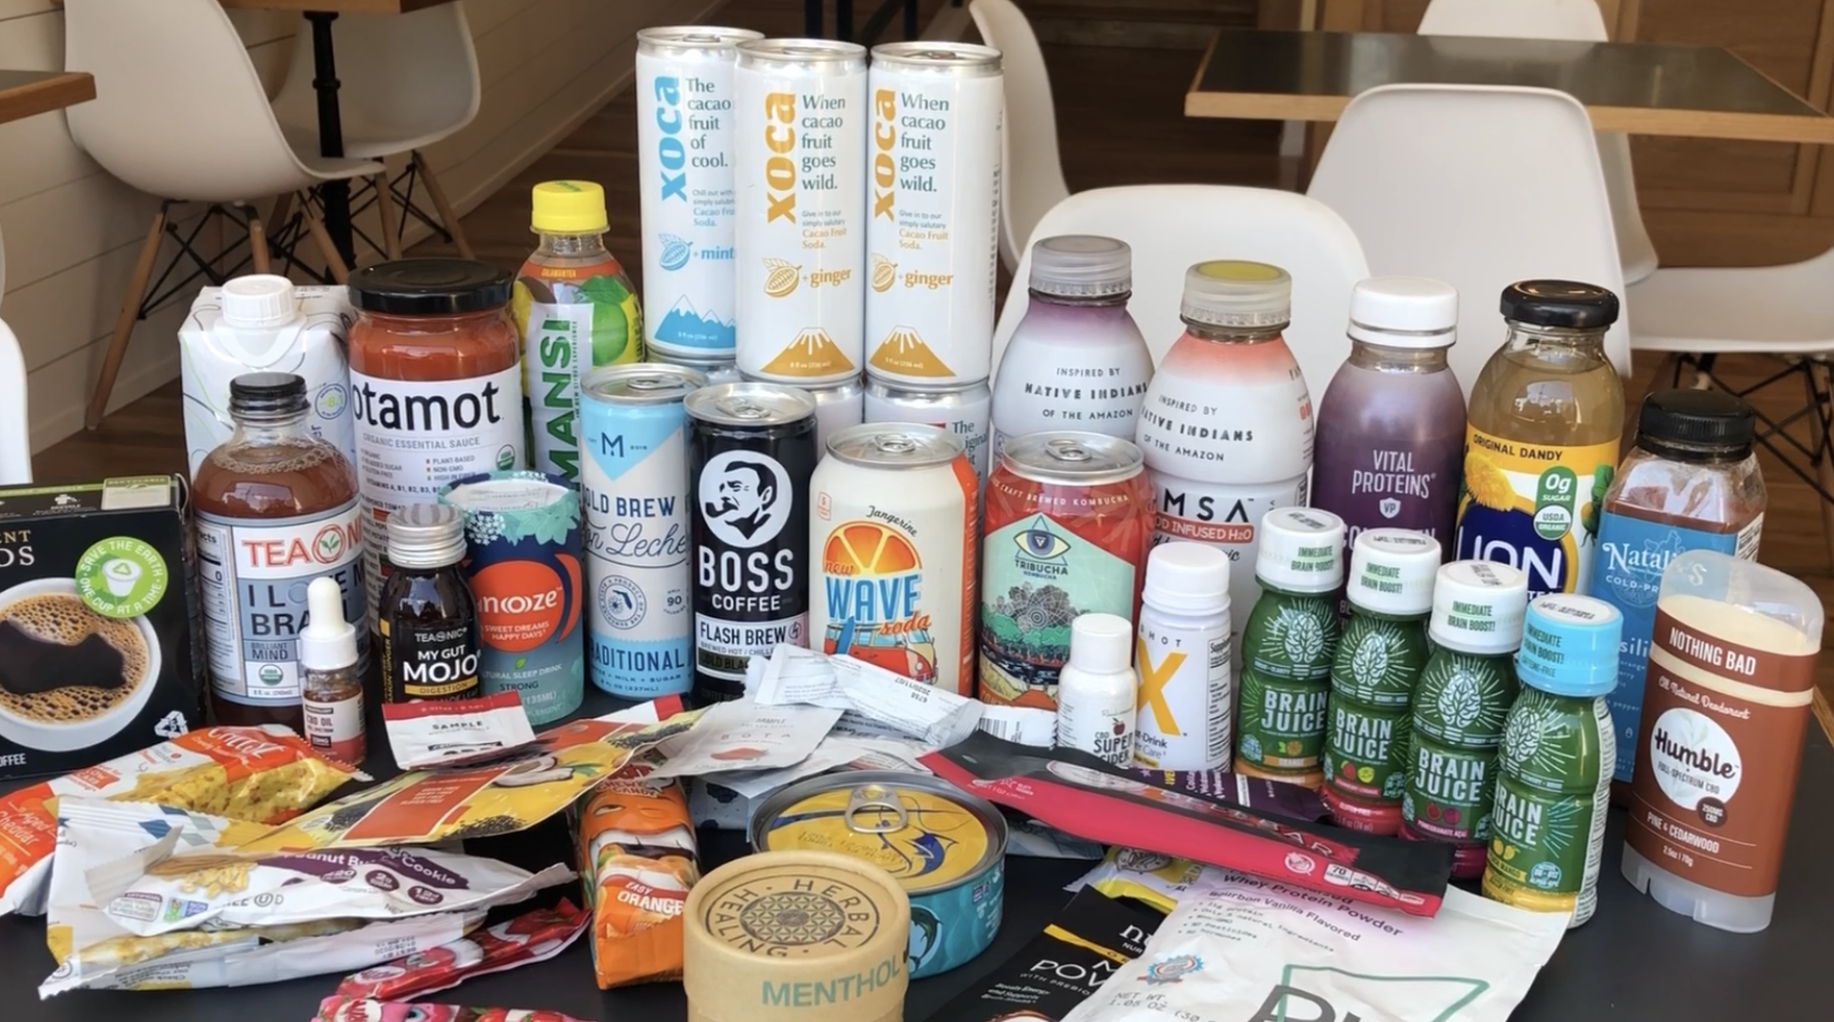 My Favorite Products from the Natural Products Expo 2019